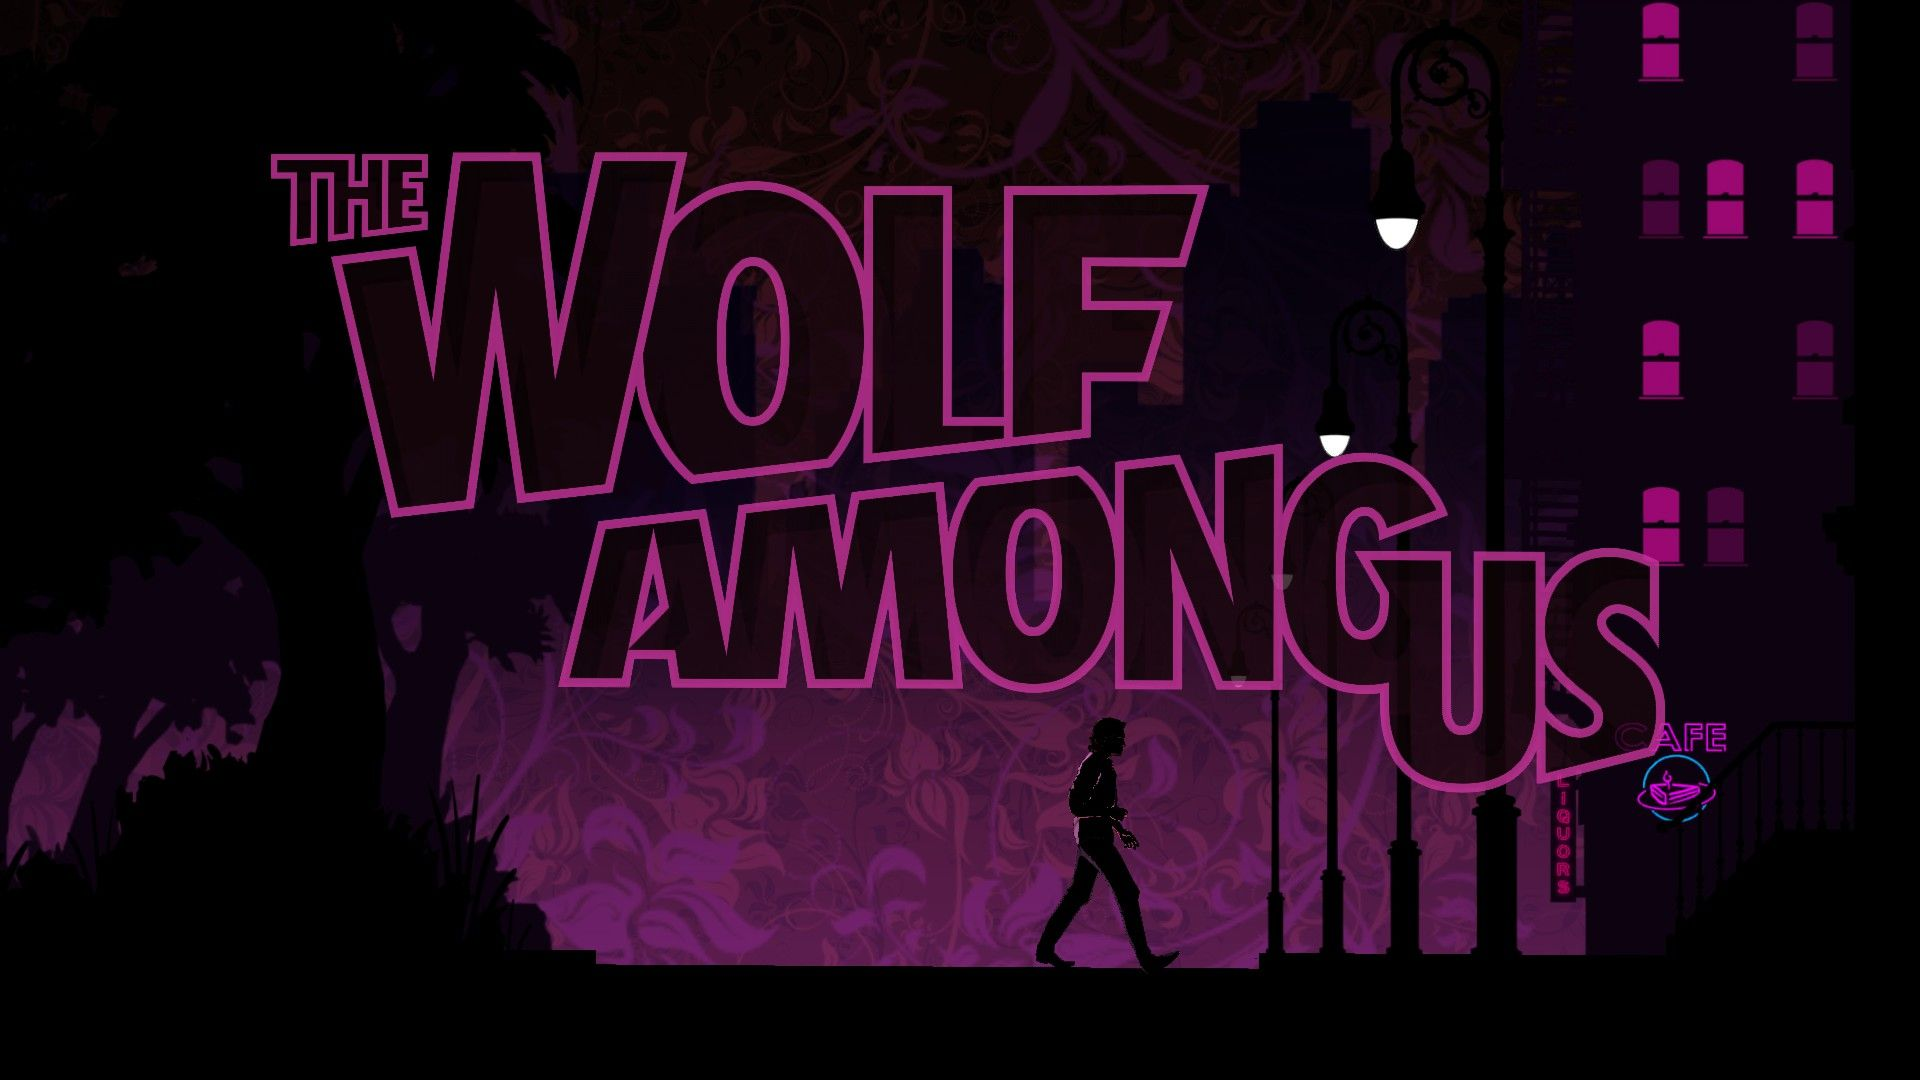 The Wolf Among Us Poster Game Hd Wallpaper Igry Illyustracii Art Illyustracii